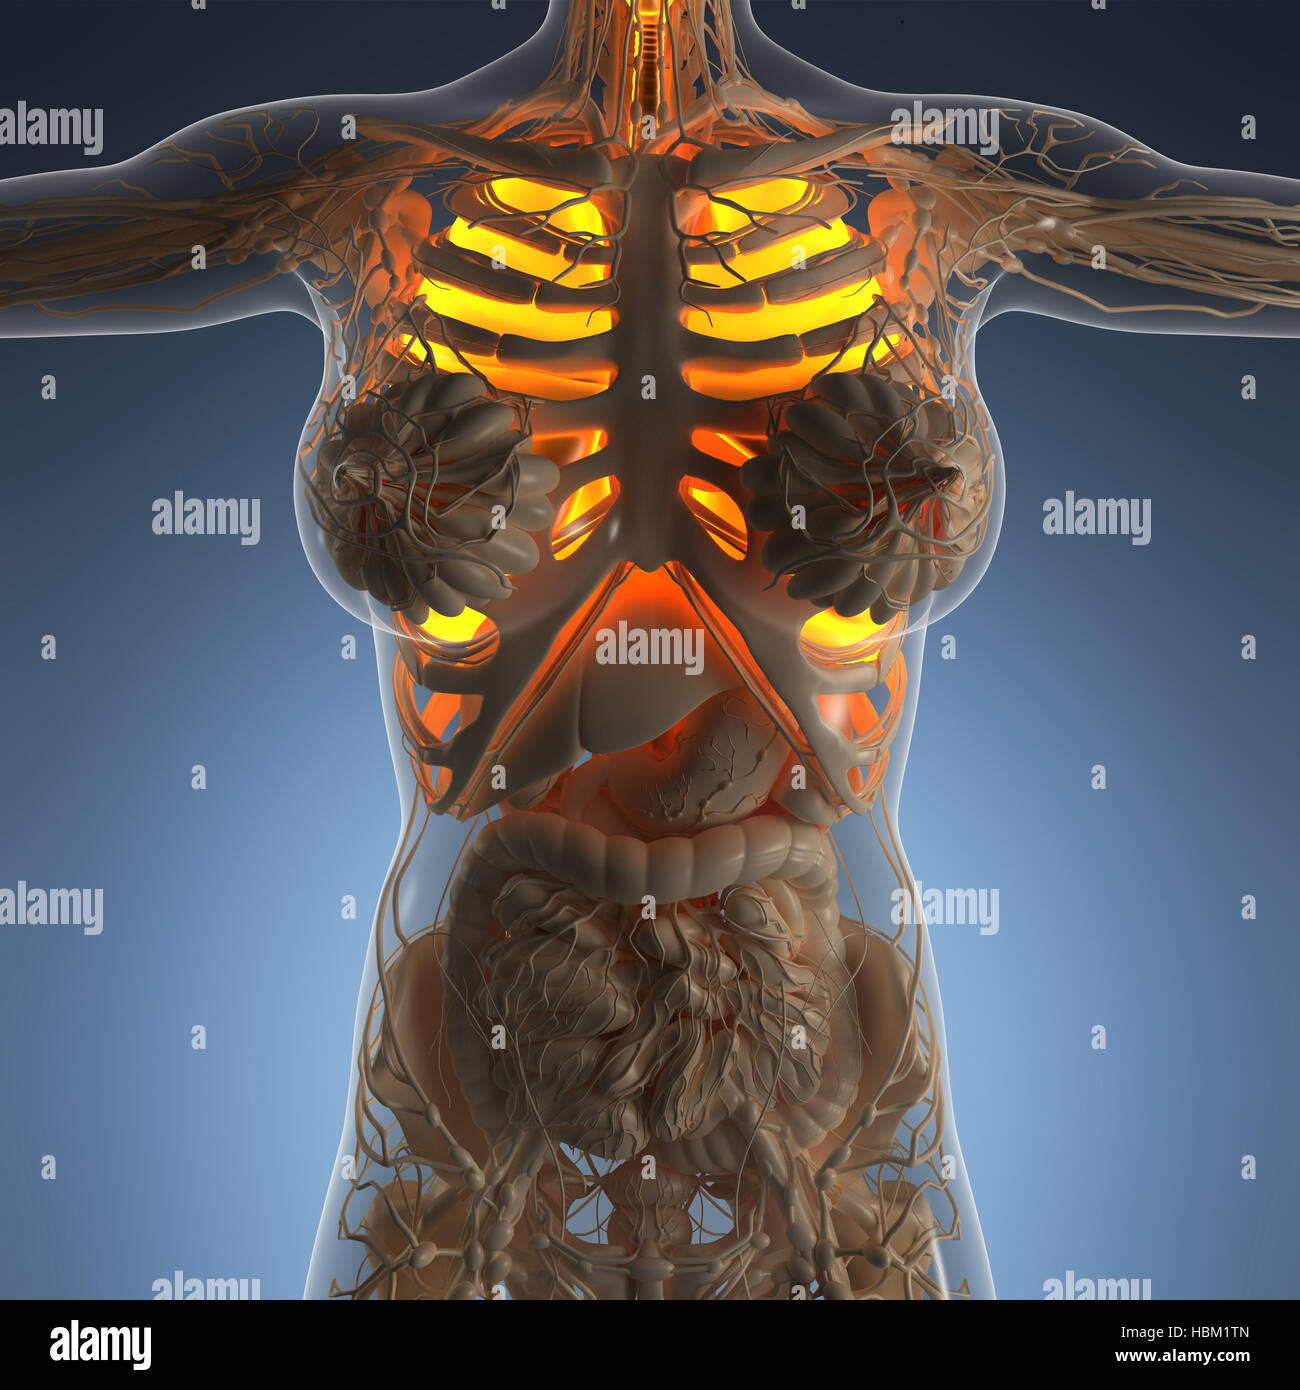 Science Anatomy Of Woman Body With Glow Lungs Stock Photo 127674309